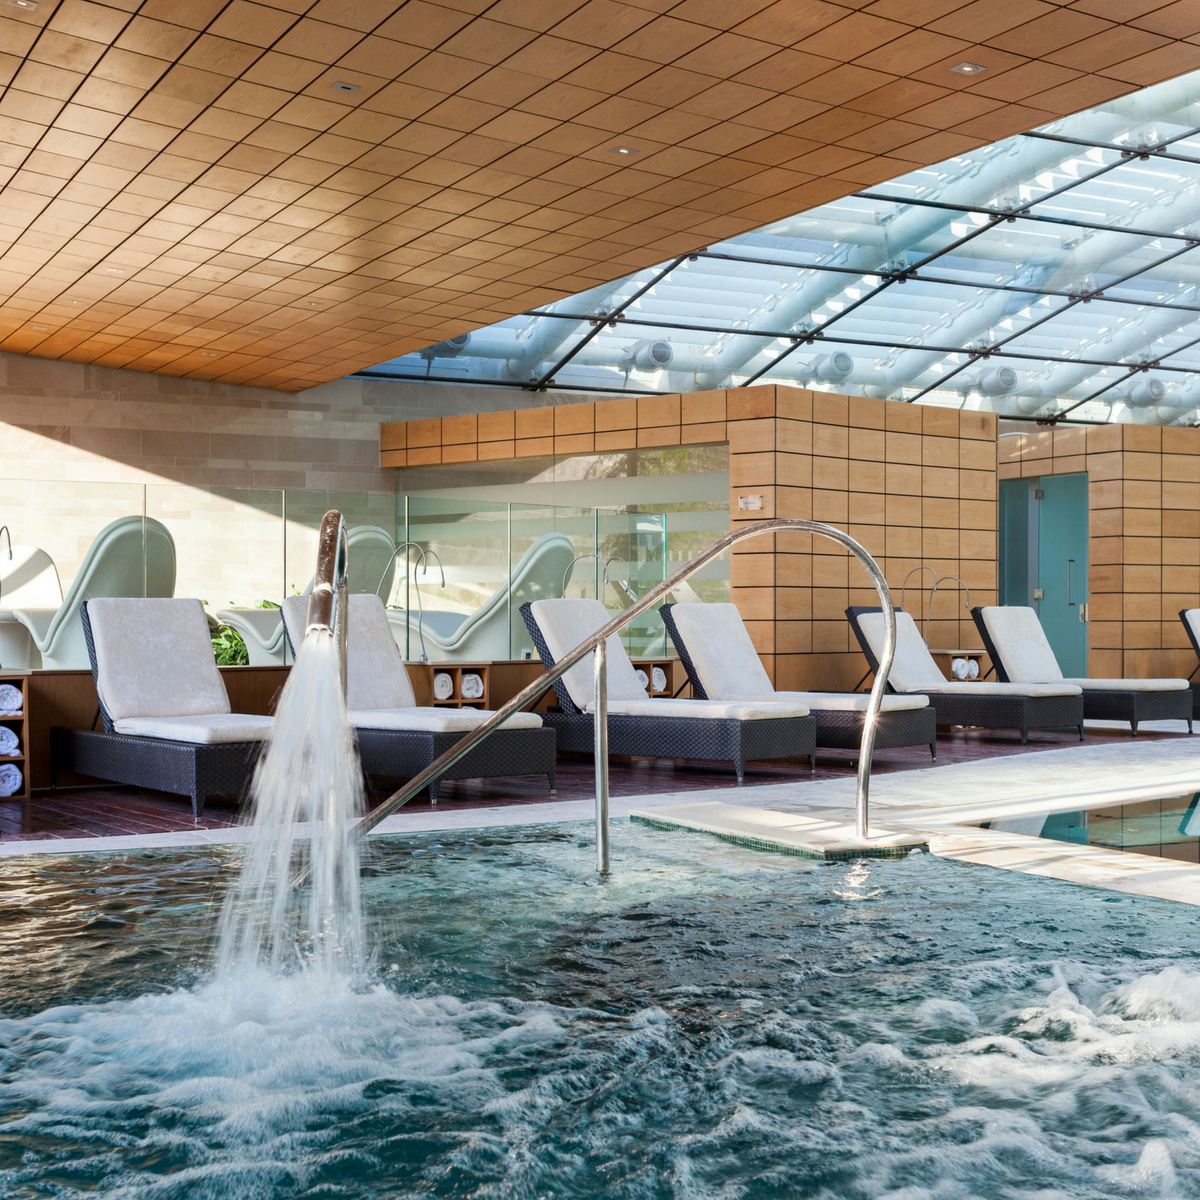 Indoor spa pool with jets and beds to lie on